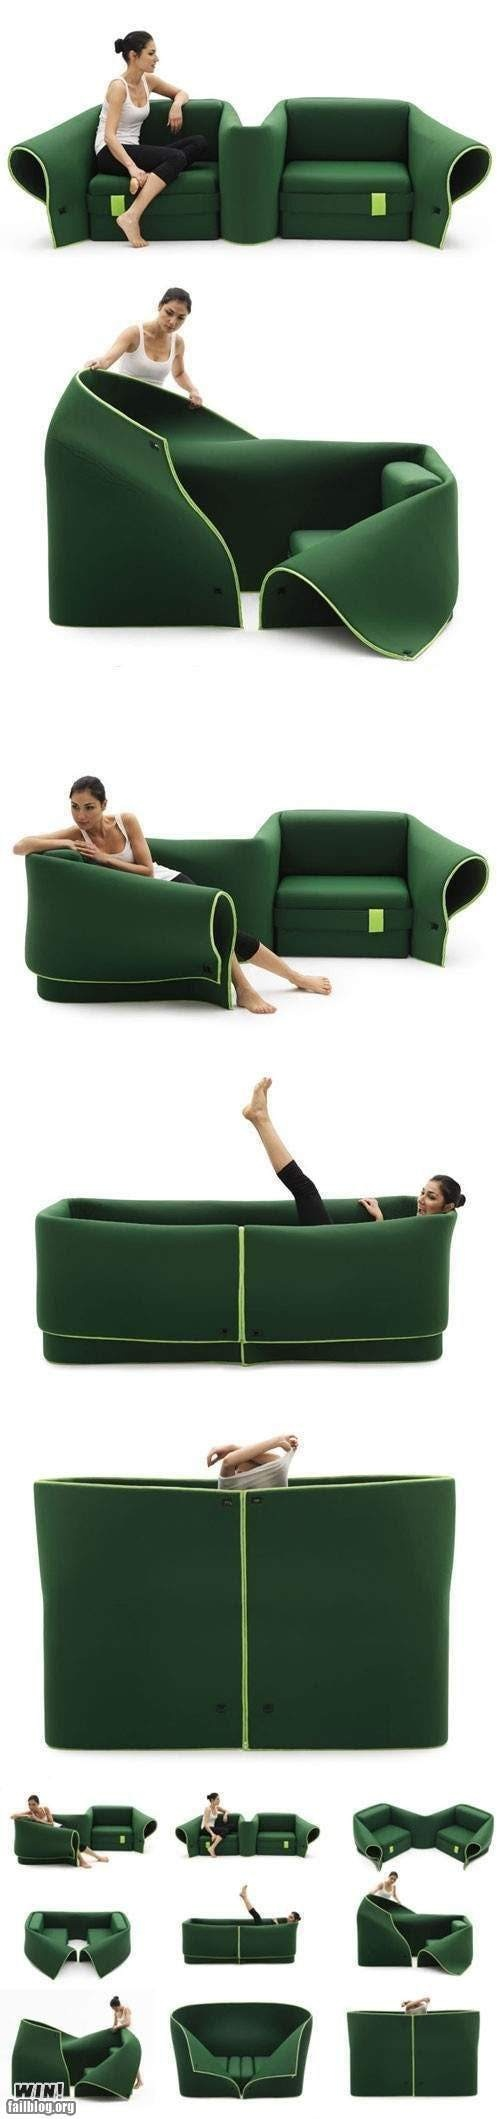 50 sleek funky and weird chair designs webdesigner depot and weird - Funny Pictures About Convertible Sofa Oh And Cool Pics About Convertible Sofa Also Convertible Sofa Photos